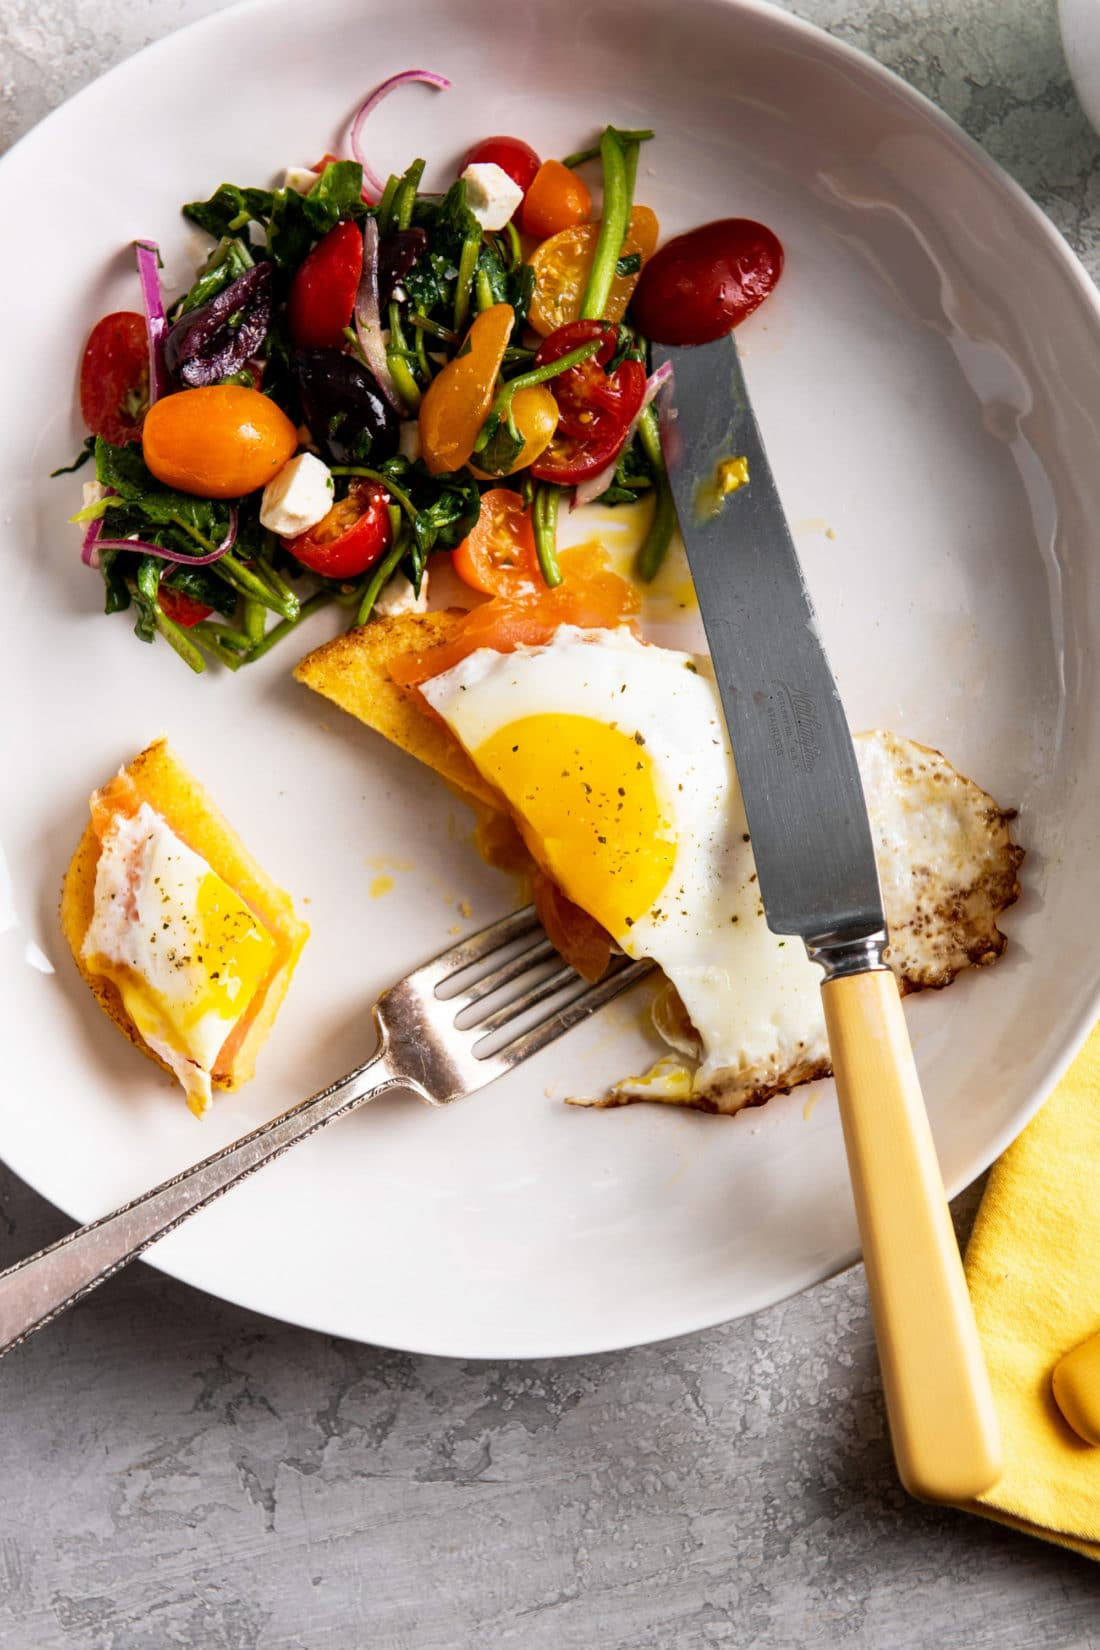 Fried Eggs and Smoked Salmon over Polenta Cakes